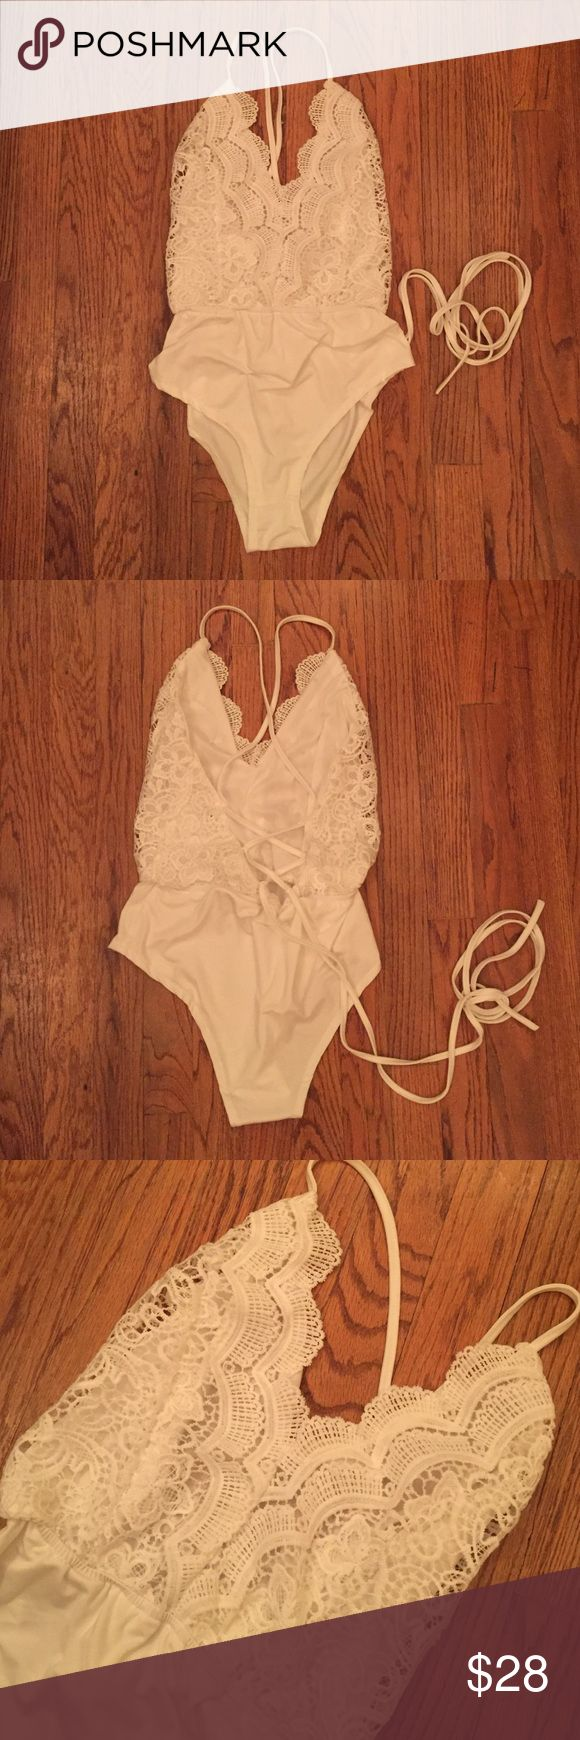 White lace bodysuit NWOT. Never worn only tried on. Supper cute open back one piece. Feels like it can be worn as a bathing suit but I'm not positive. I bought it to go with high waisted shorts but it didn't fit me quite right :/ supper long strings so you and do the back however you want or even as a halter Tops